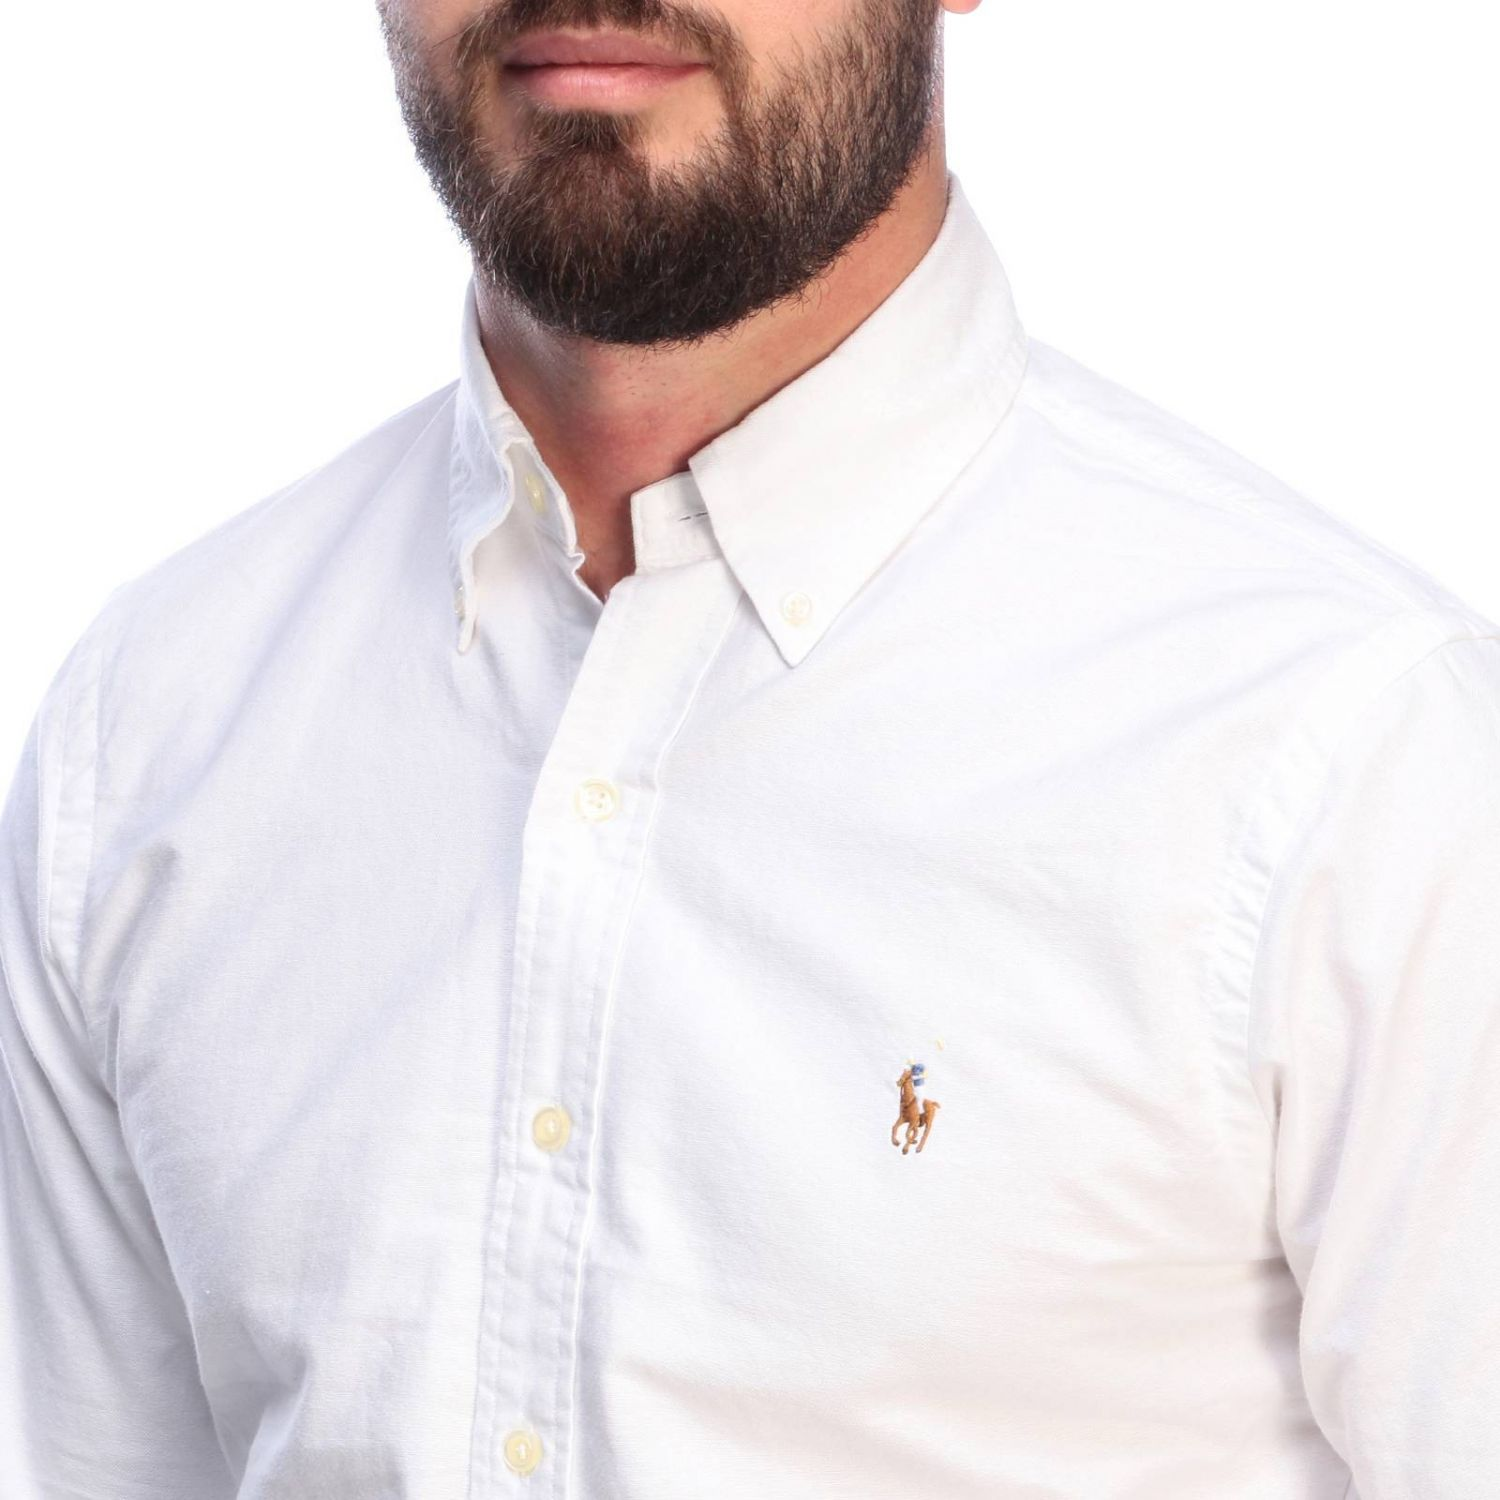 Chemise Oxford slim fit avec col button down et logo Polo Ralph Lauren blanc 3